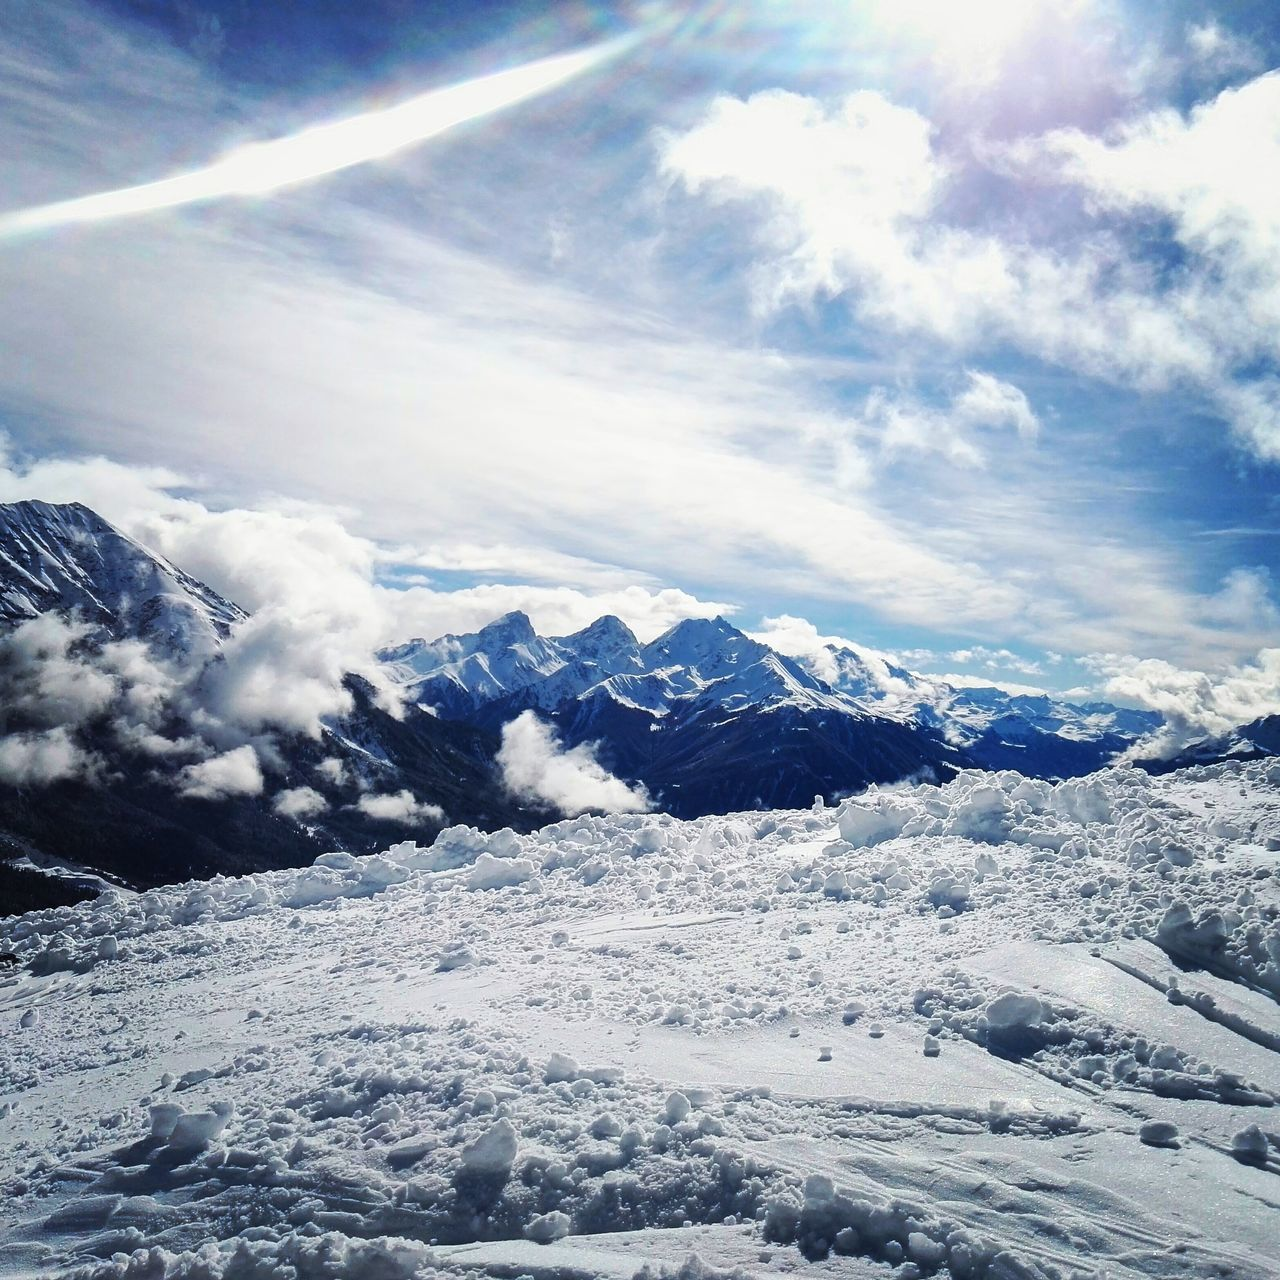 Snow Cloud - Sky Scenics Nature Mountain Beauty In Nature Outdoors Sky Freshness No People Winter Snowboard